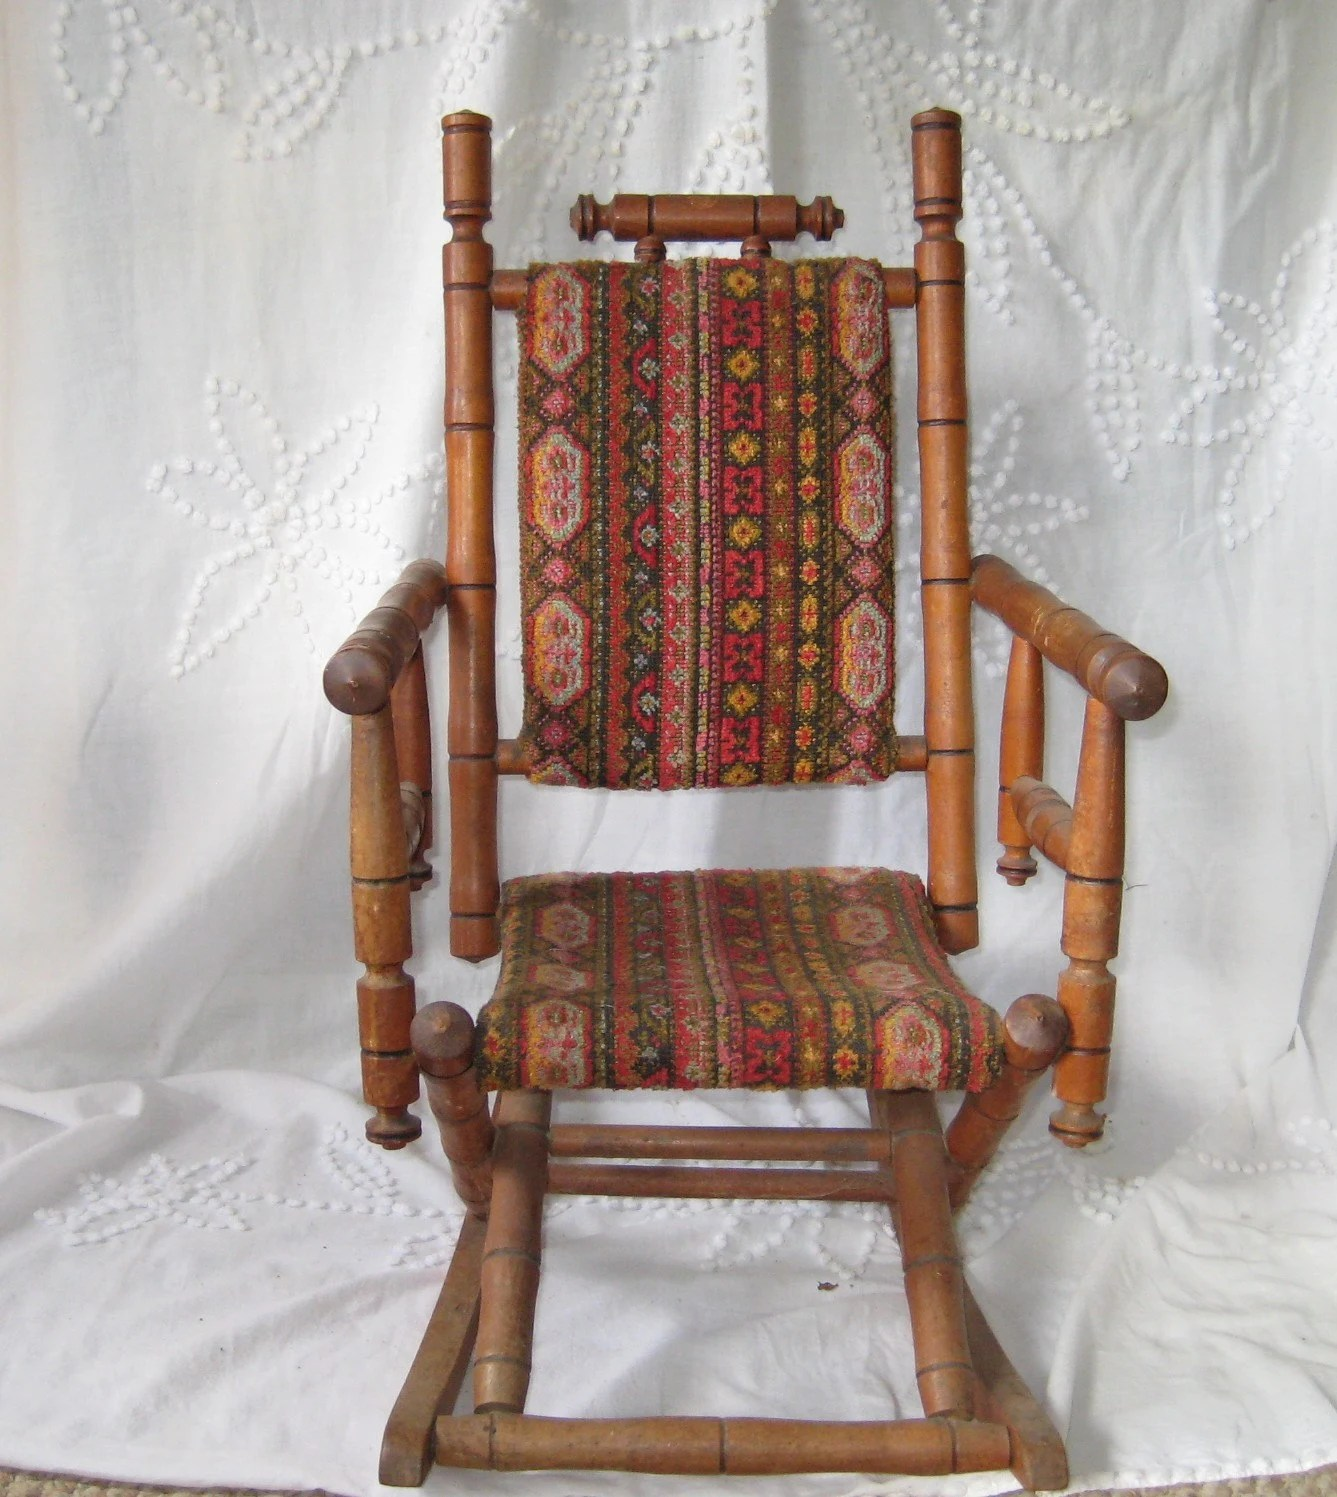 Kids Upholstered Rocking Chair Antique Rocking Chair Childs Rocking Chair Upholstered